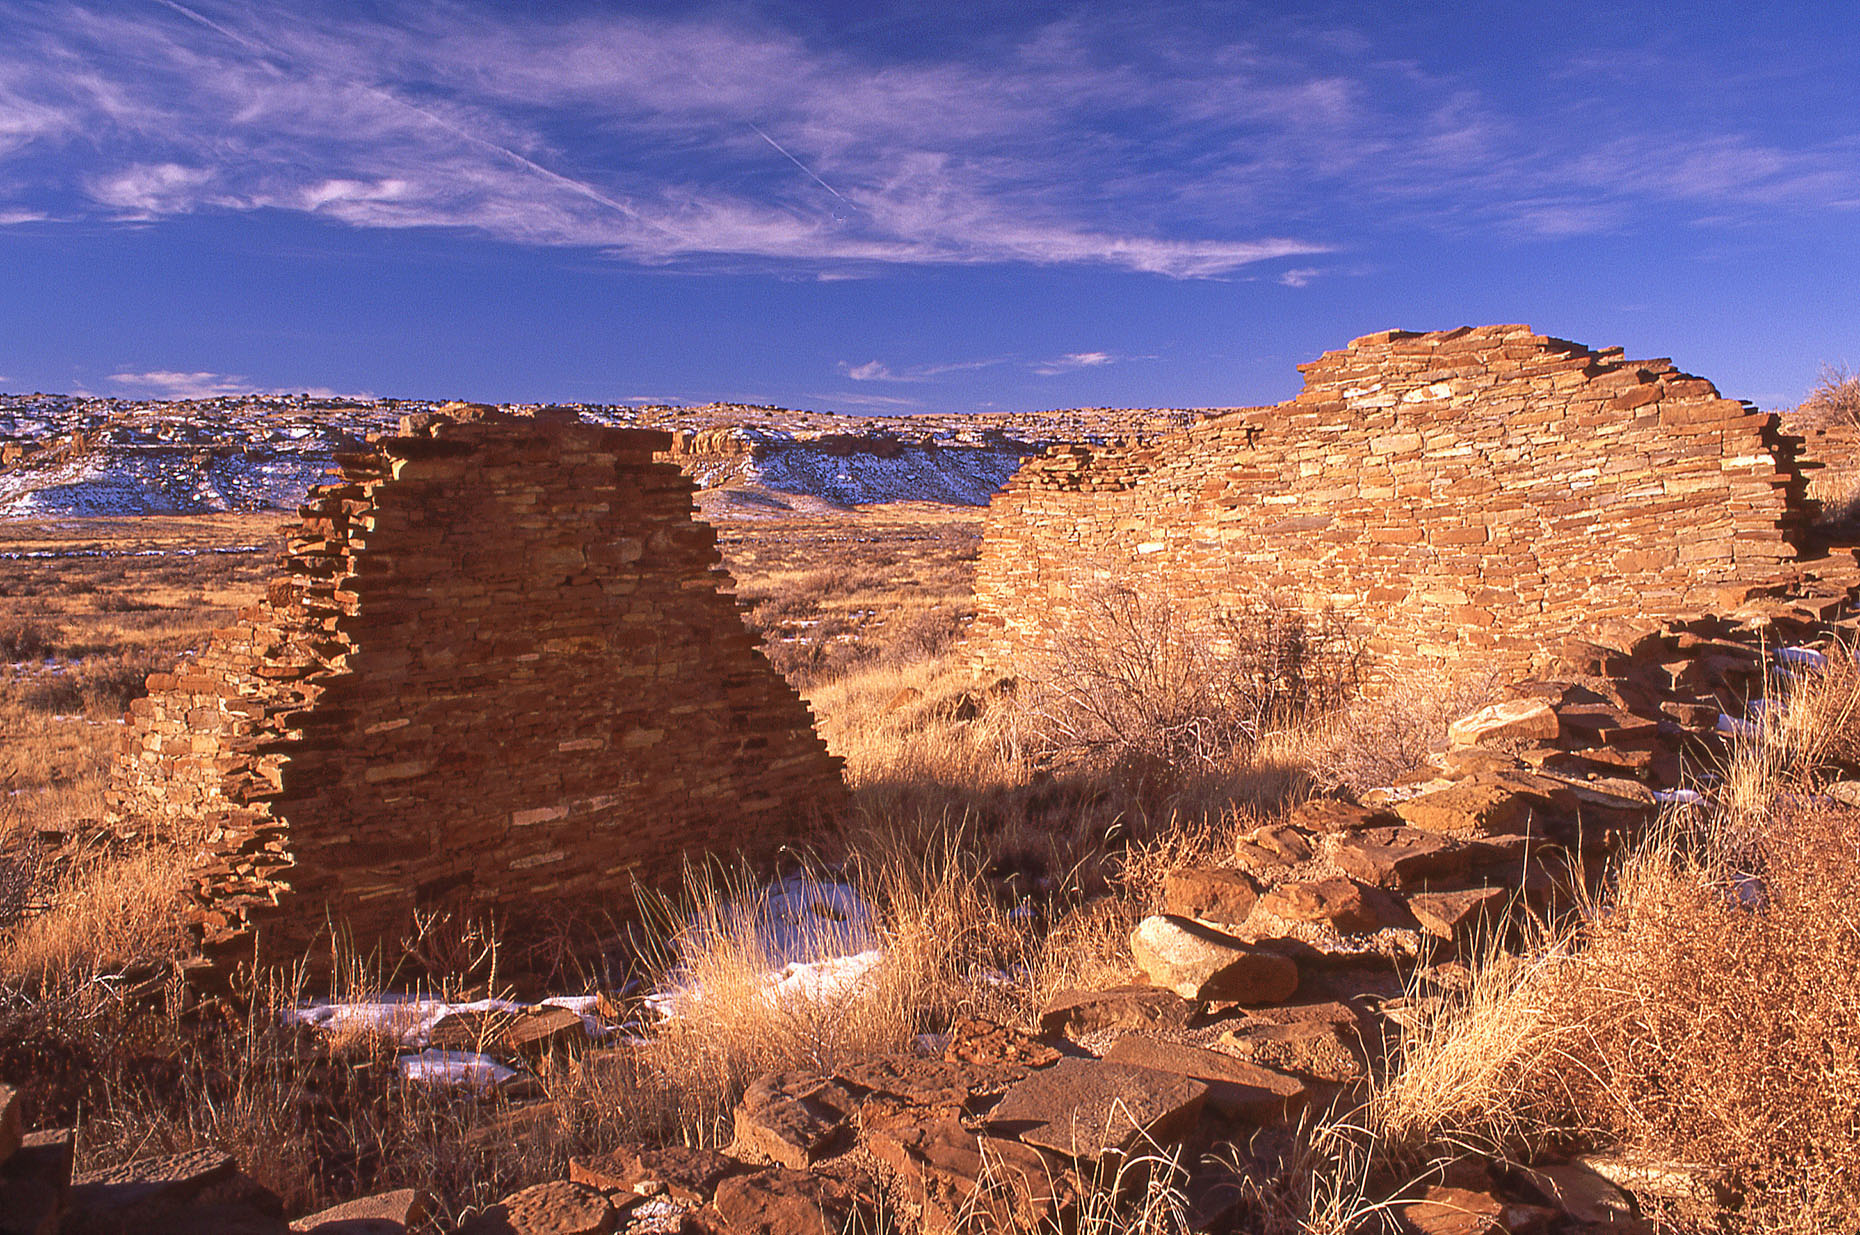 Chetro Ketl, John Annerino, Chaco Culture National Historical Park, NM, UNESCO World Heritage Site